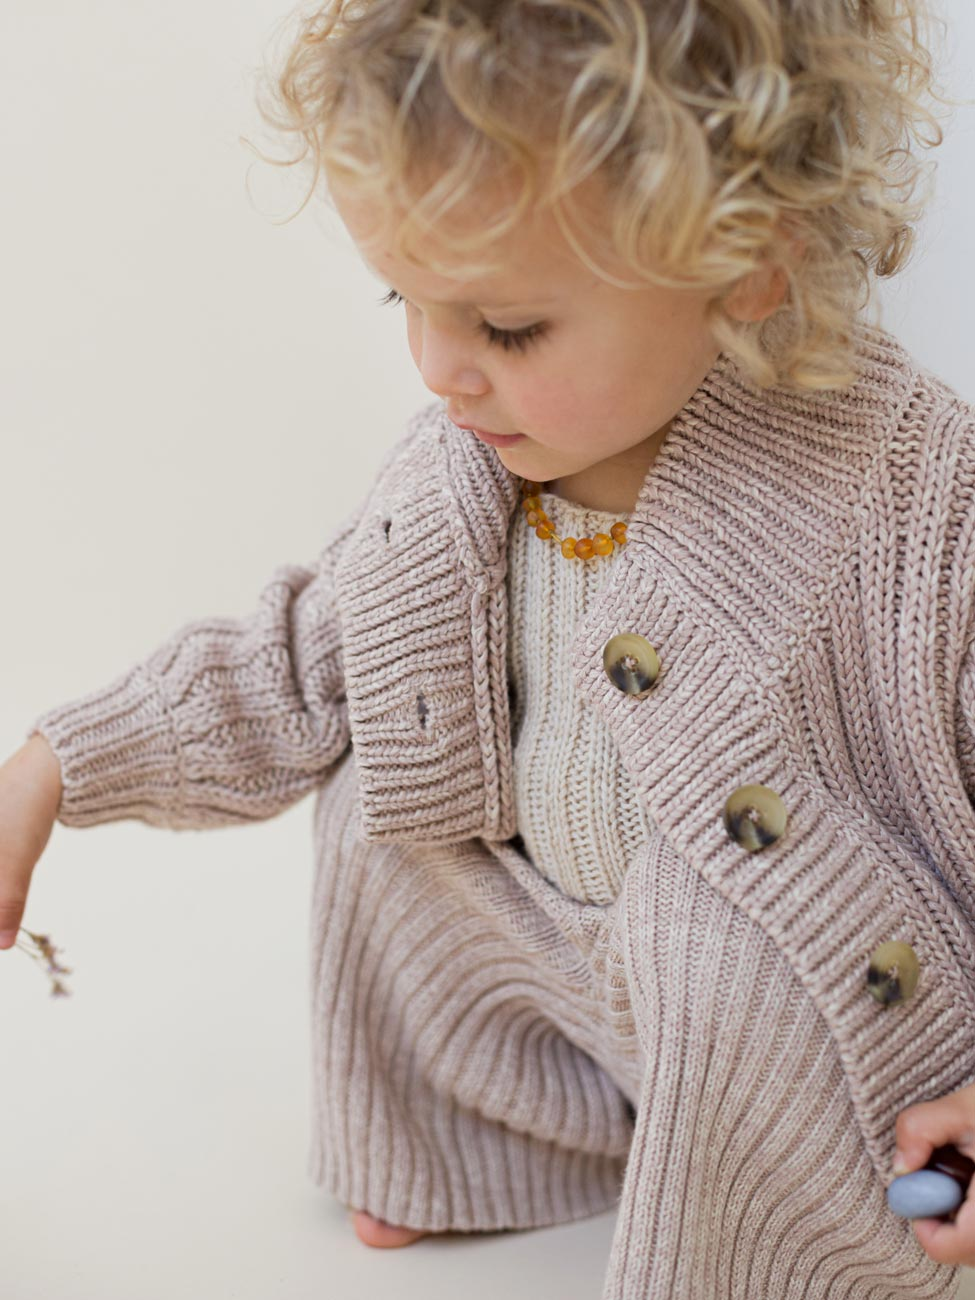 Sustainable, ethical, organic, natural, green clothing for babies and children. Cardigan, organic loungewear, quality basics.